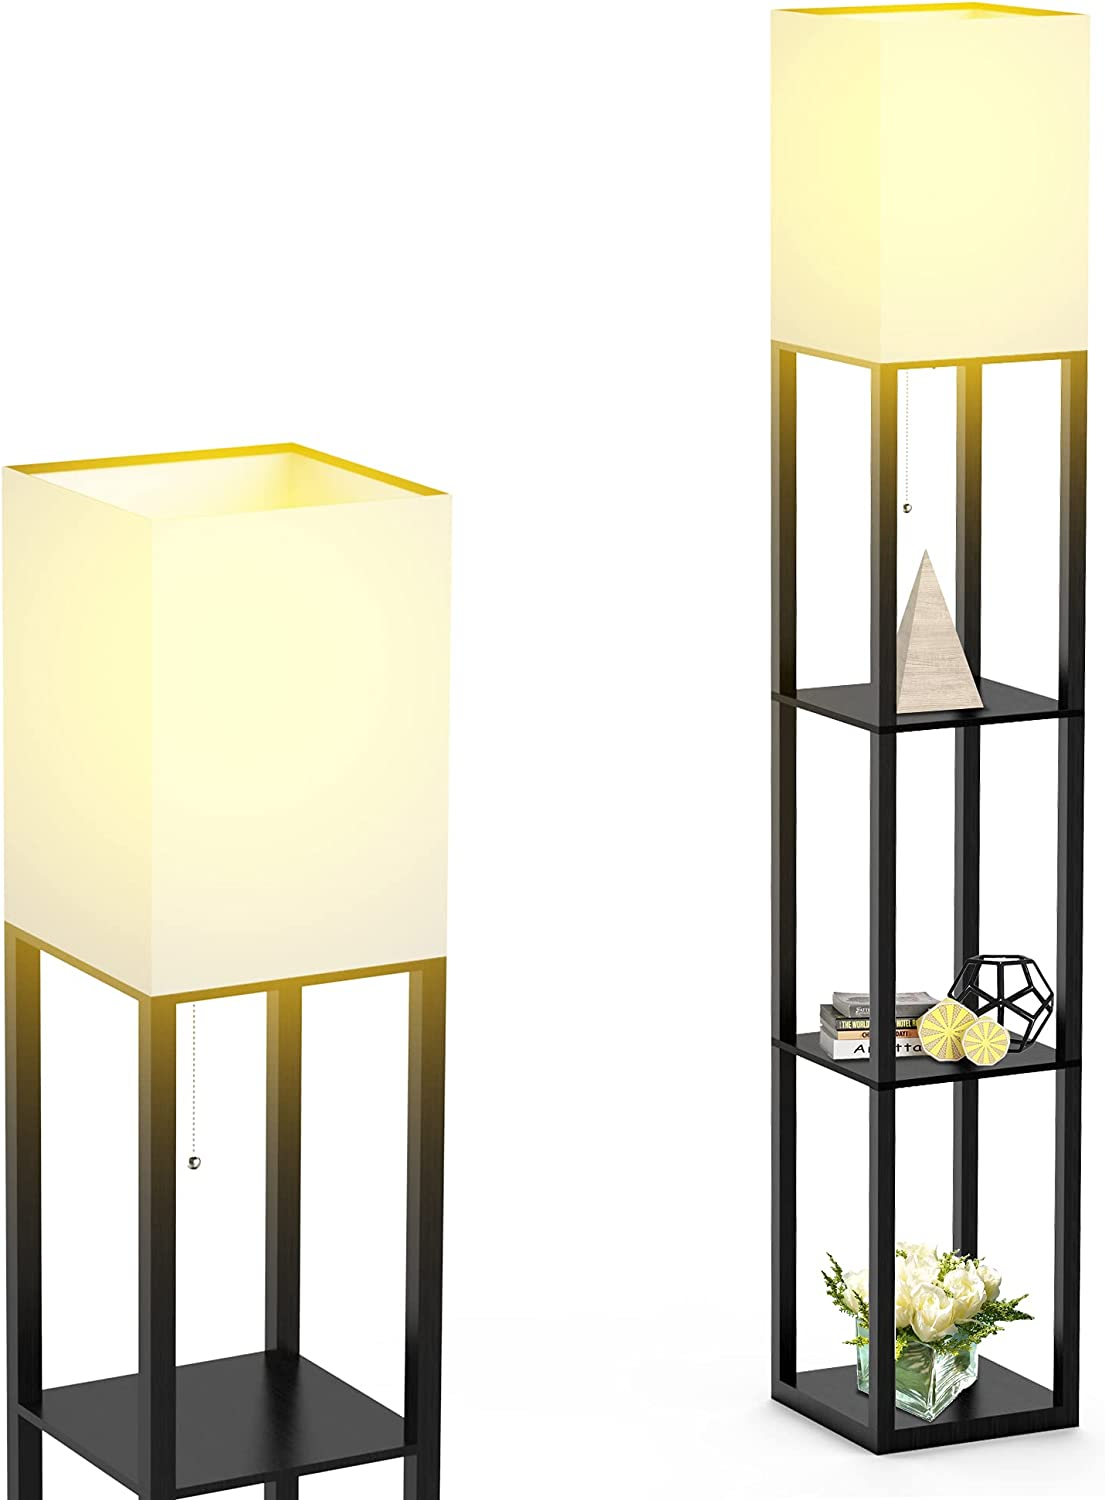 Excellence Luxury Floor Lamp with Shelves by w Solid Modern Shelf Wood